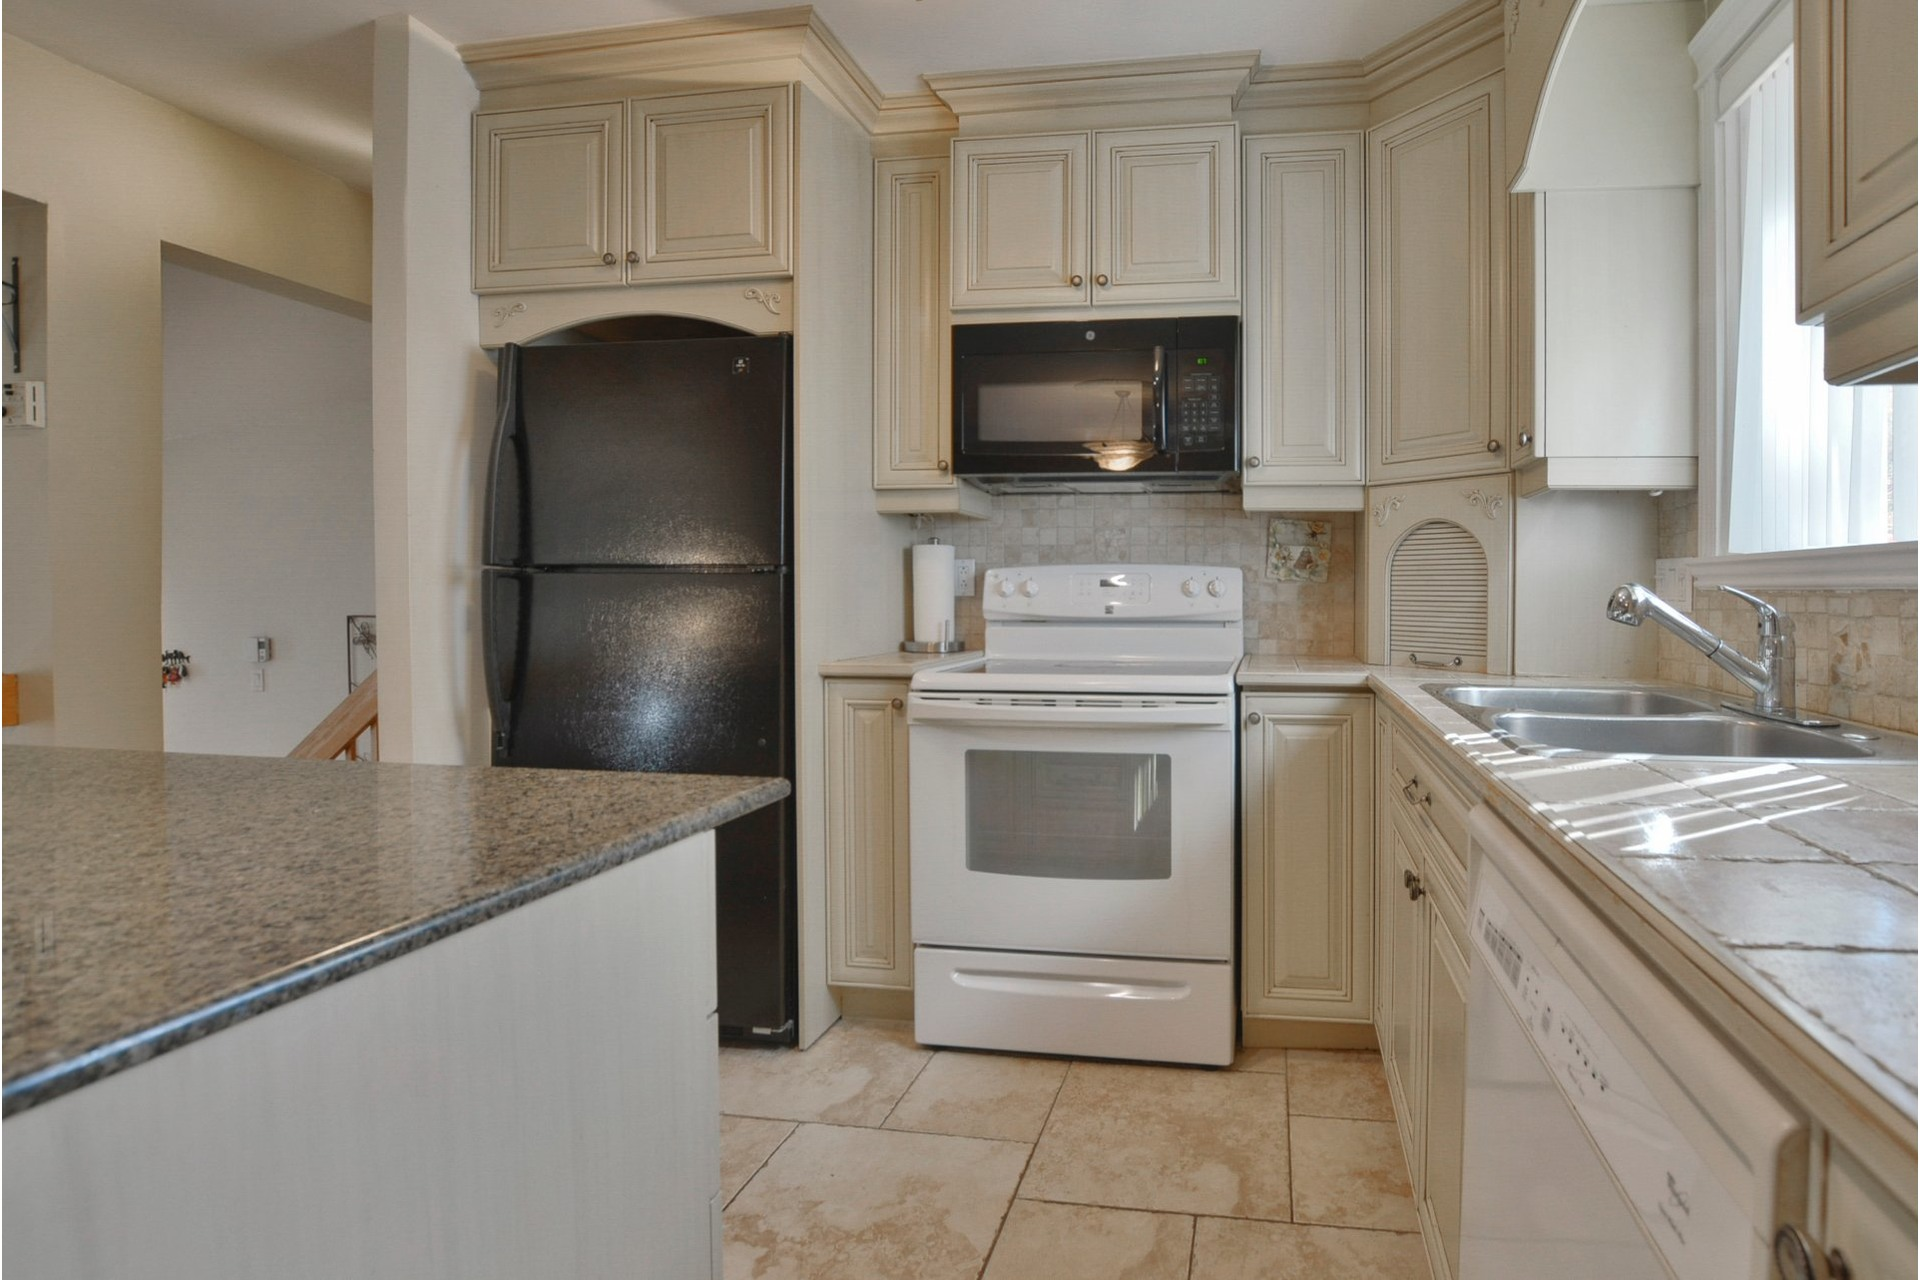 image 8 - House For sale Mascouche - 11 rooms